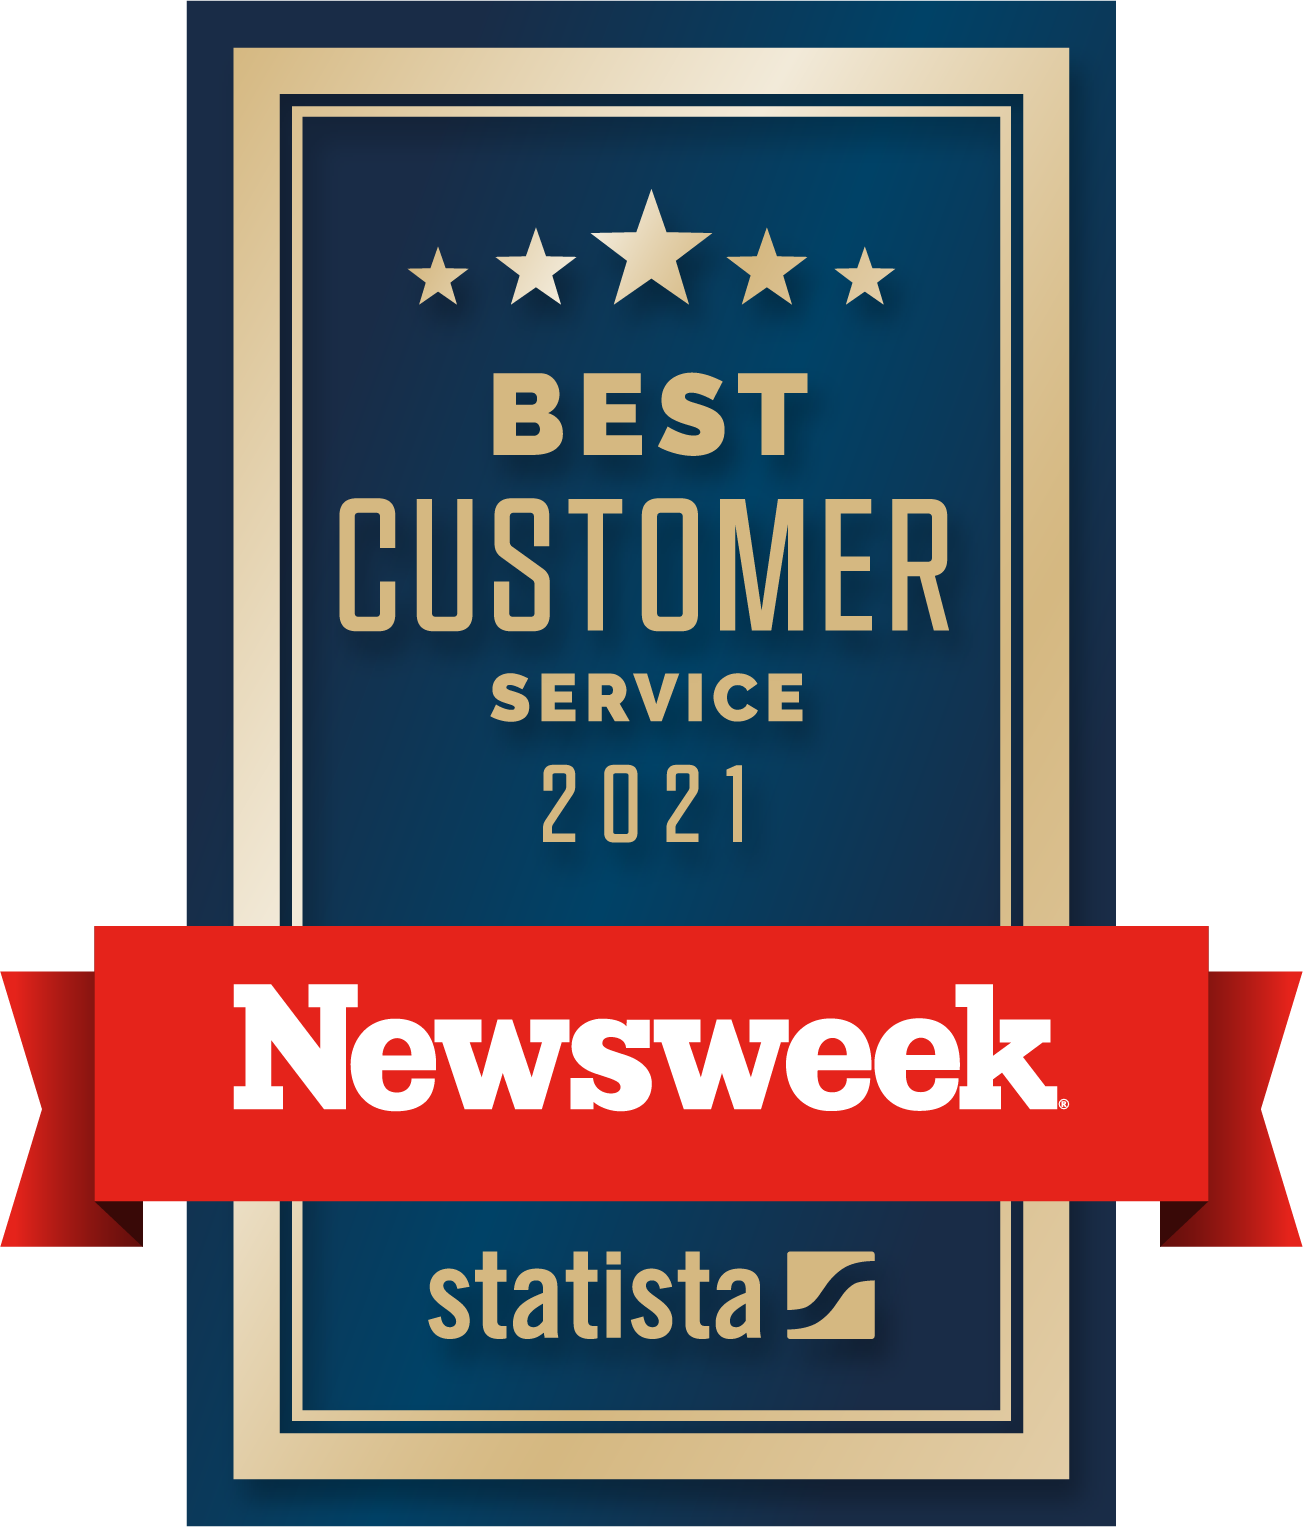 Rated America's Best Customer Service 2021 by Newsweek